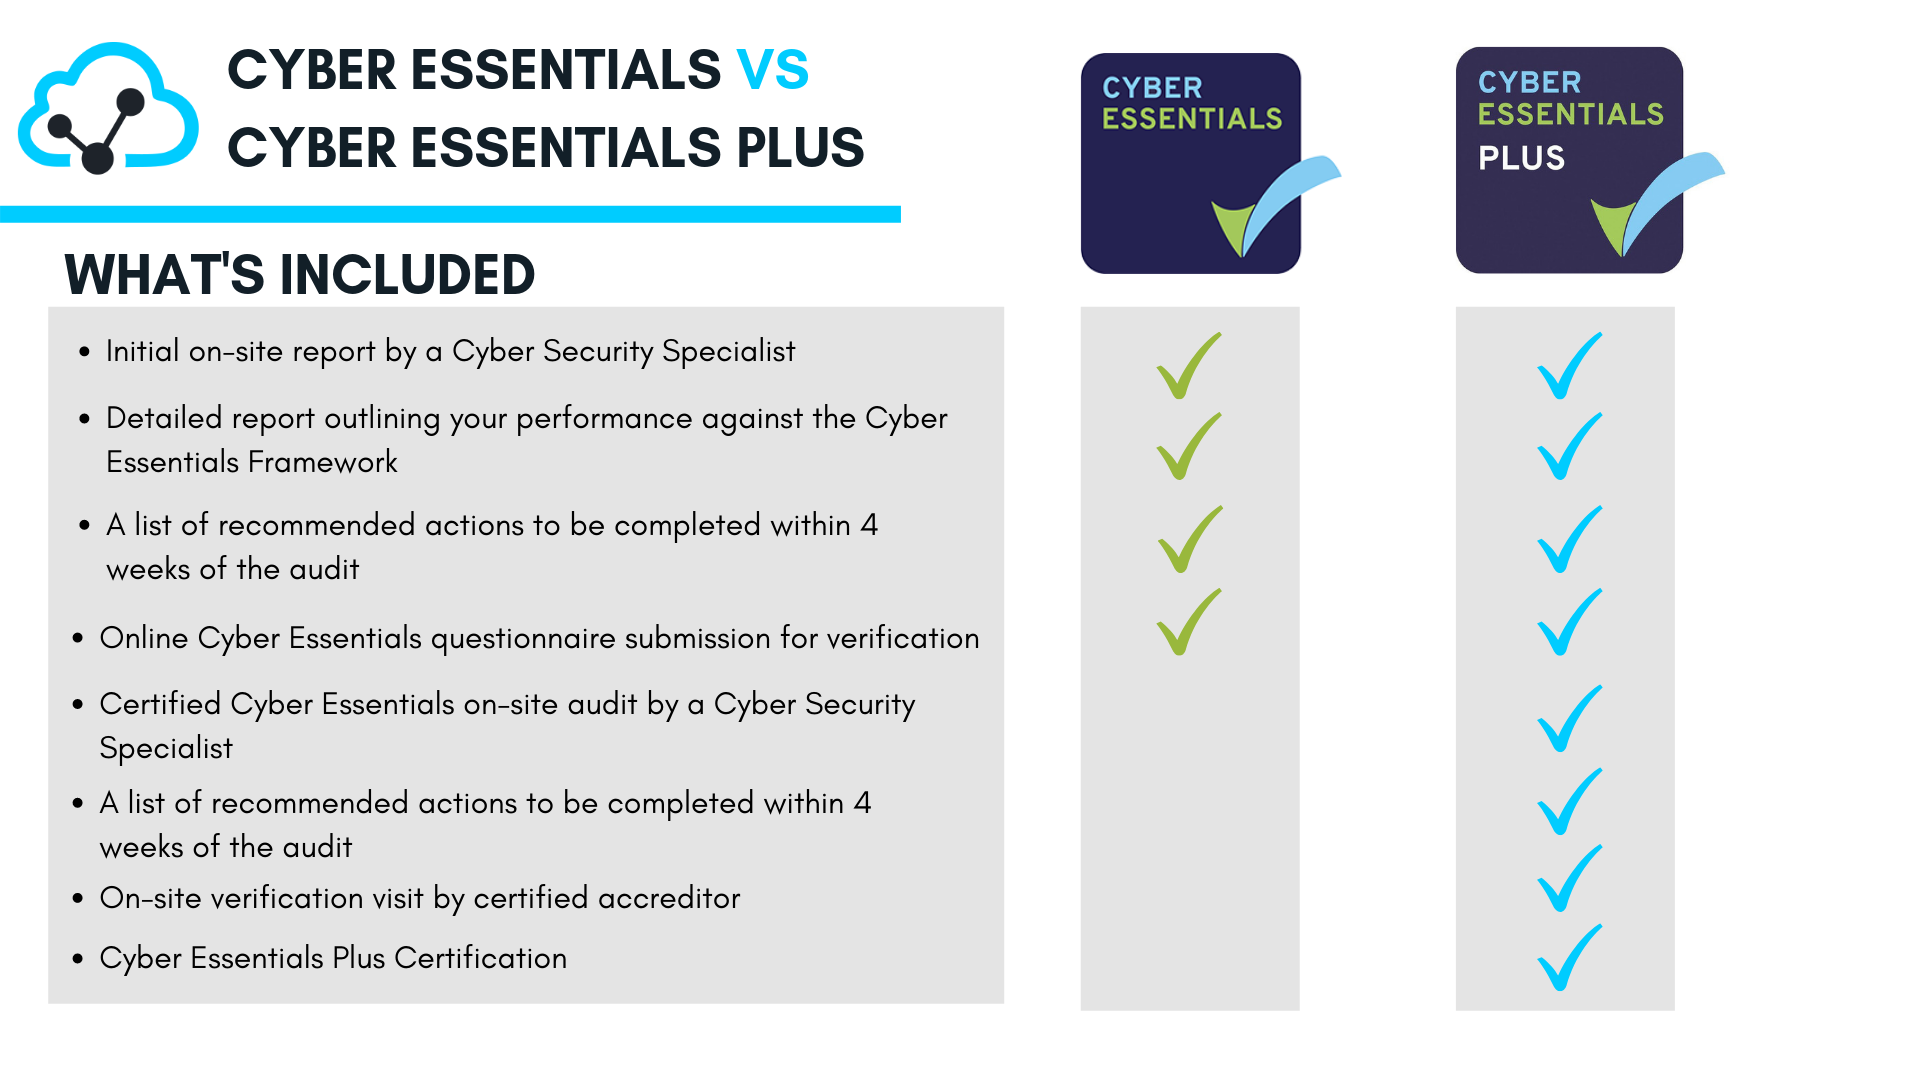 Cyber Essentials Vs Cyber Essentials Plus